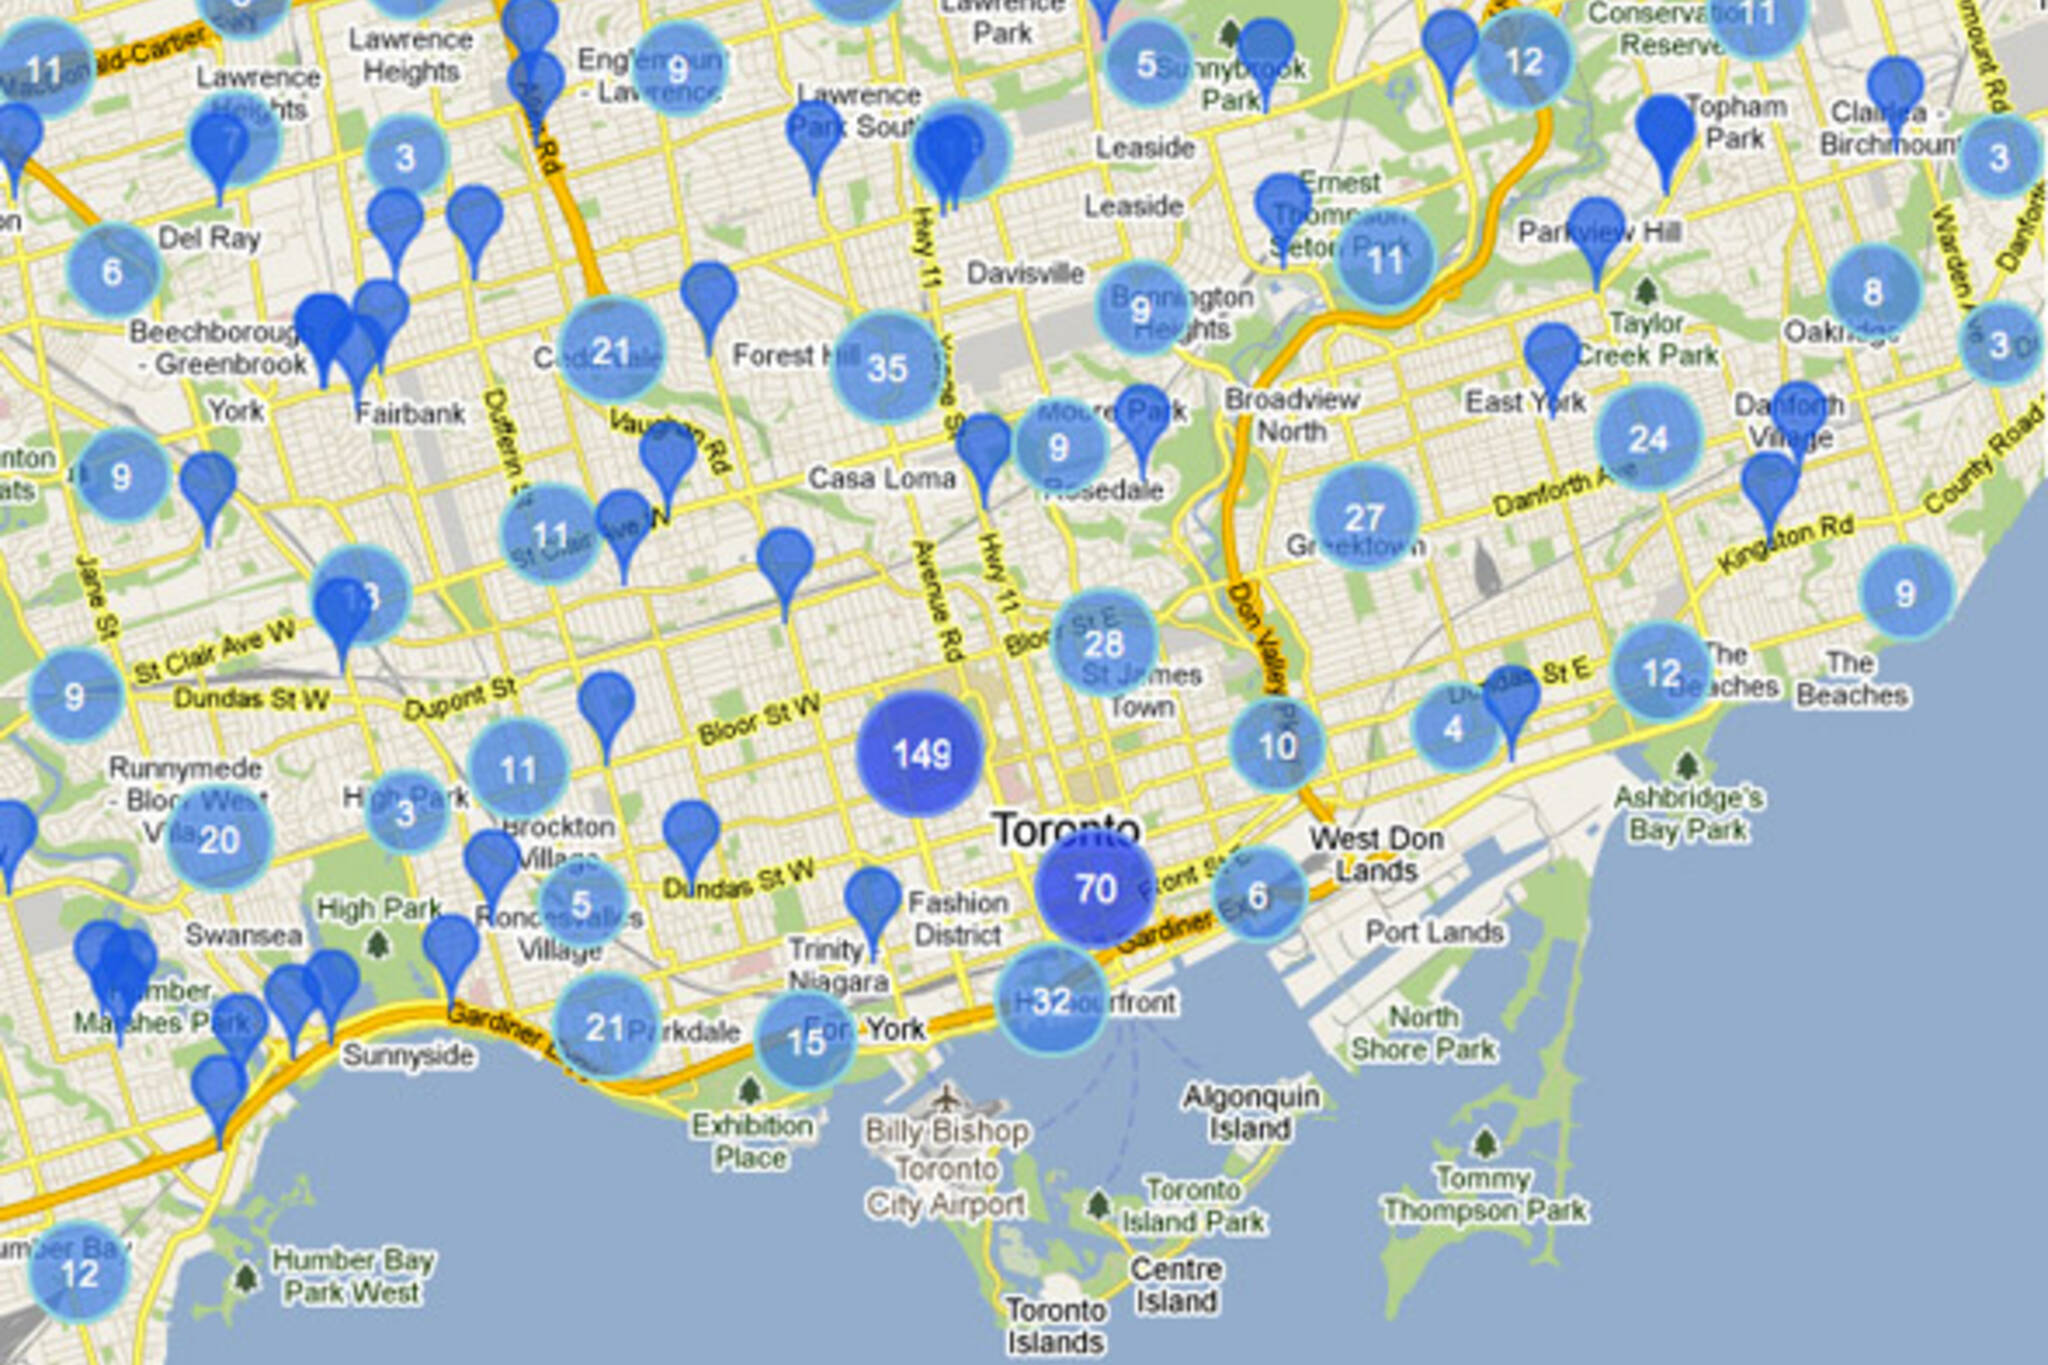 How many cellular towers are there in Toronto? Cellular Towers Map on